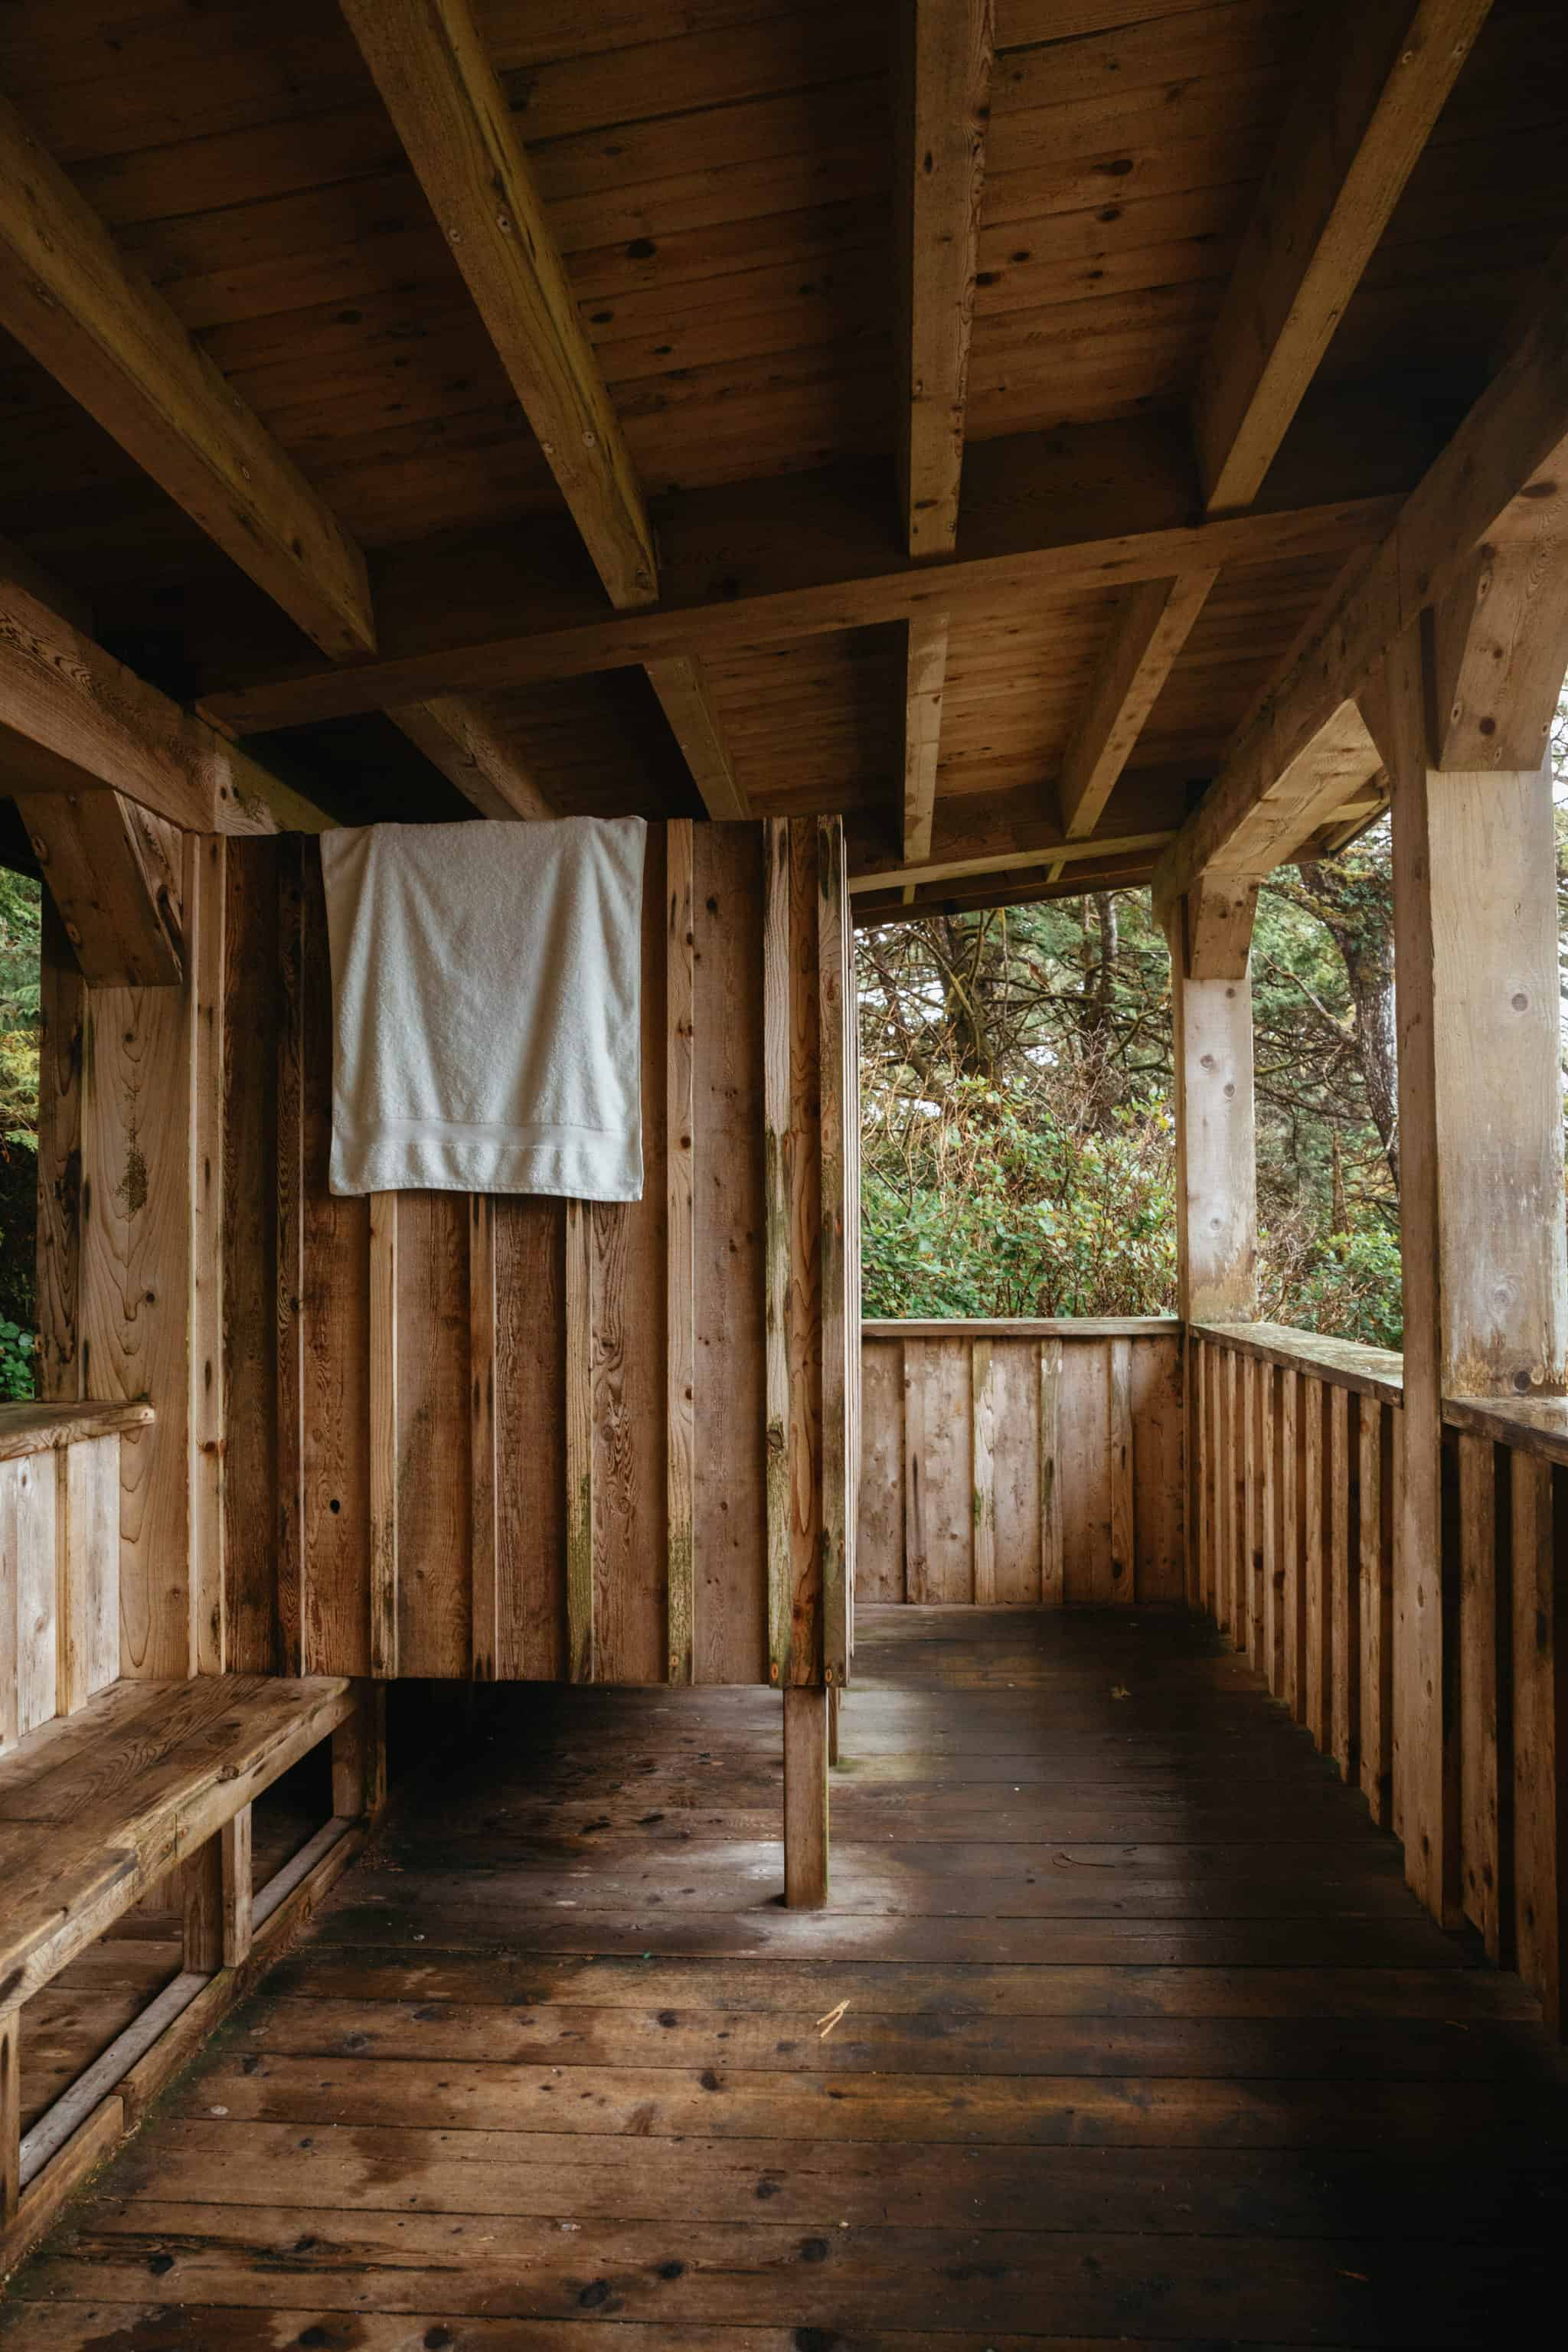 Changing rooms at hot springs cove, BC - TheMandagies.com